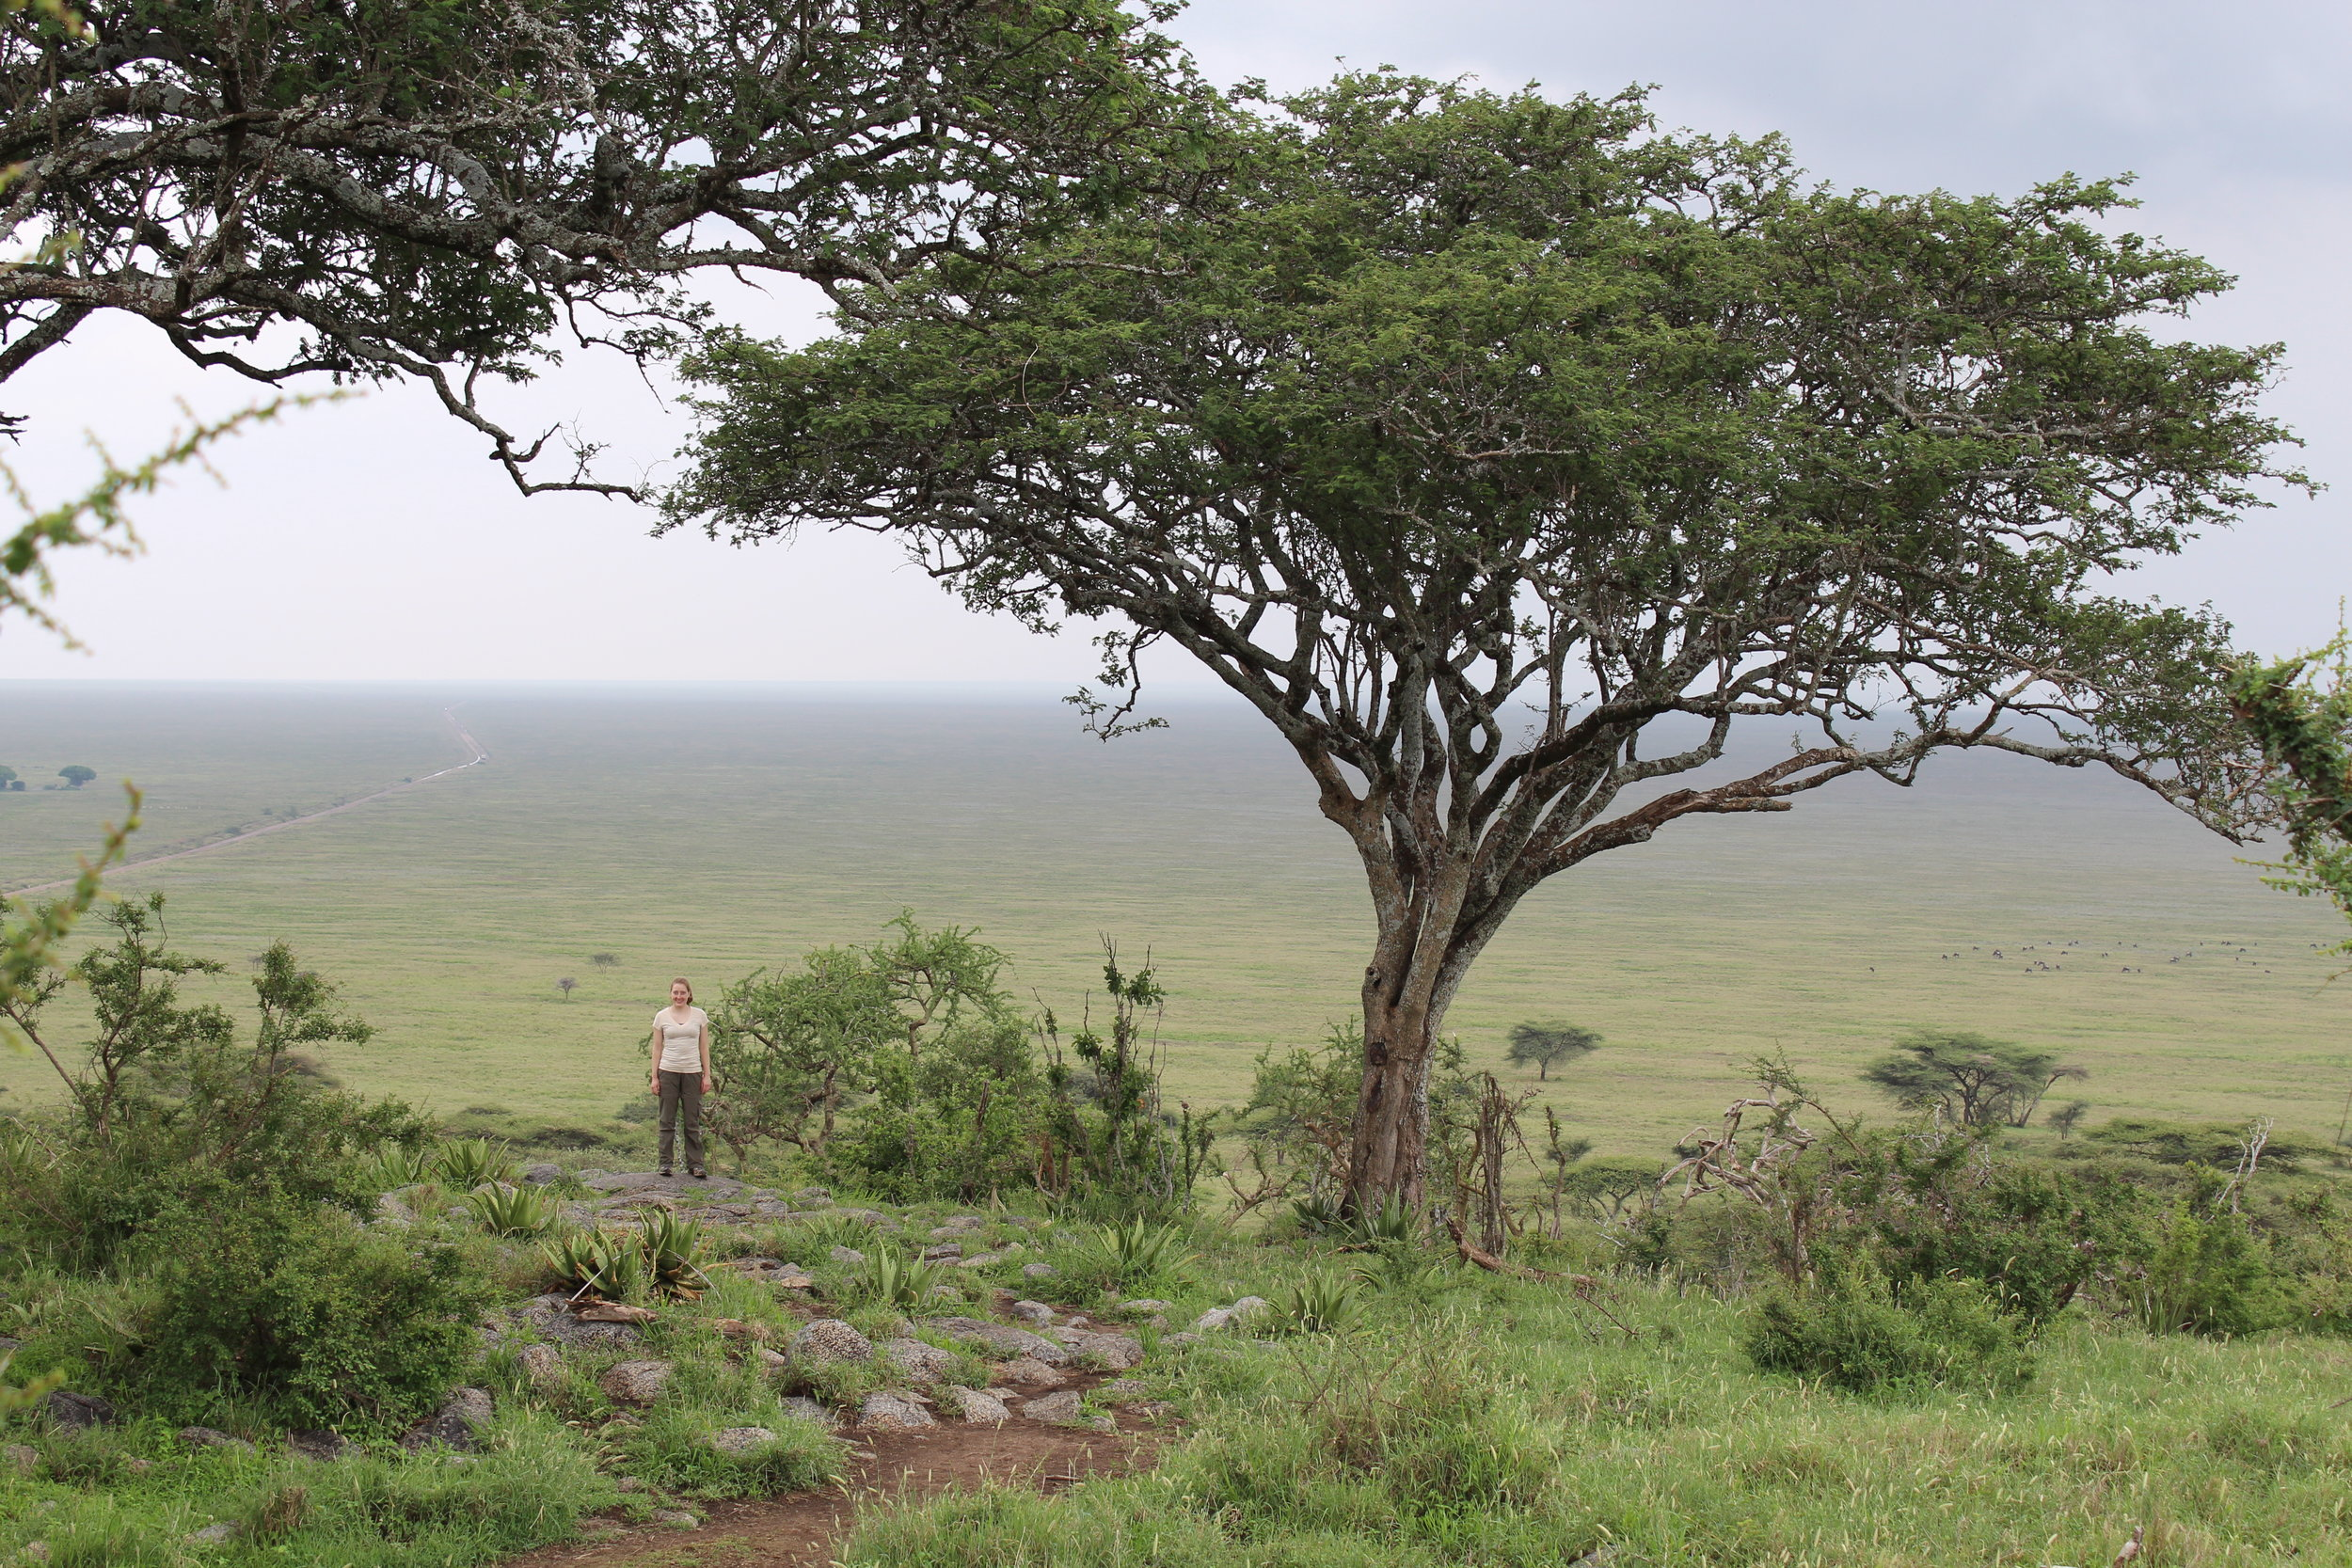 Looking over the Serengeti from Naabi Hill